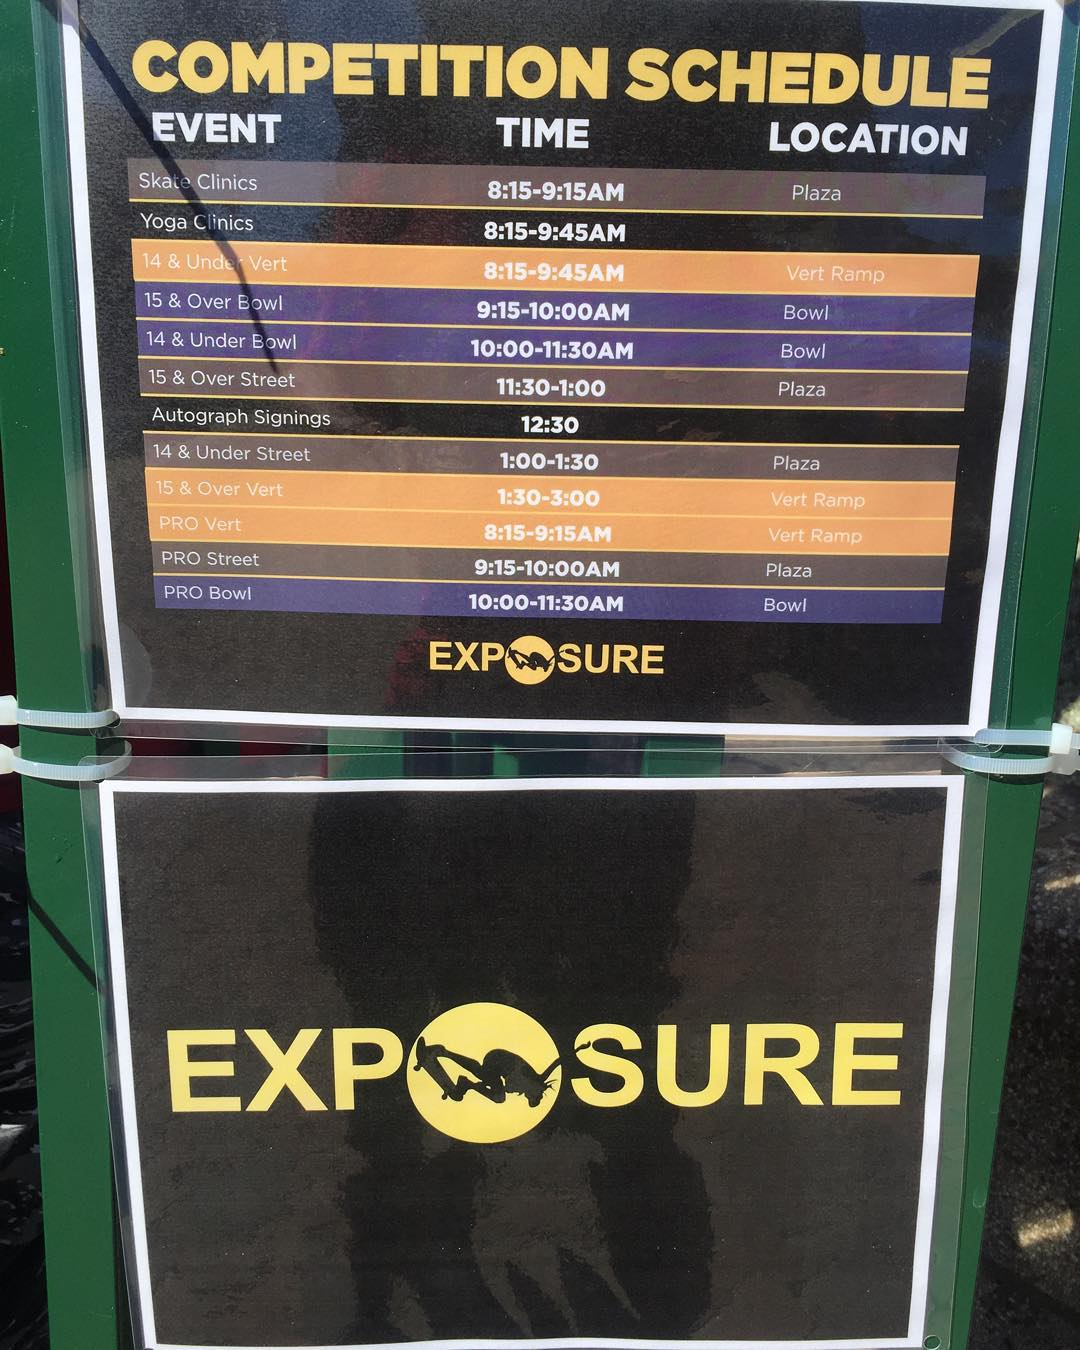 We have tons of events going on right now! Come through and check out EXPOSURE 2015! #exposure2015